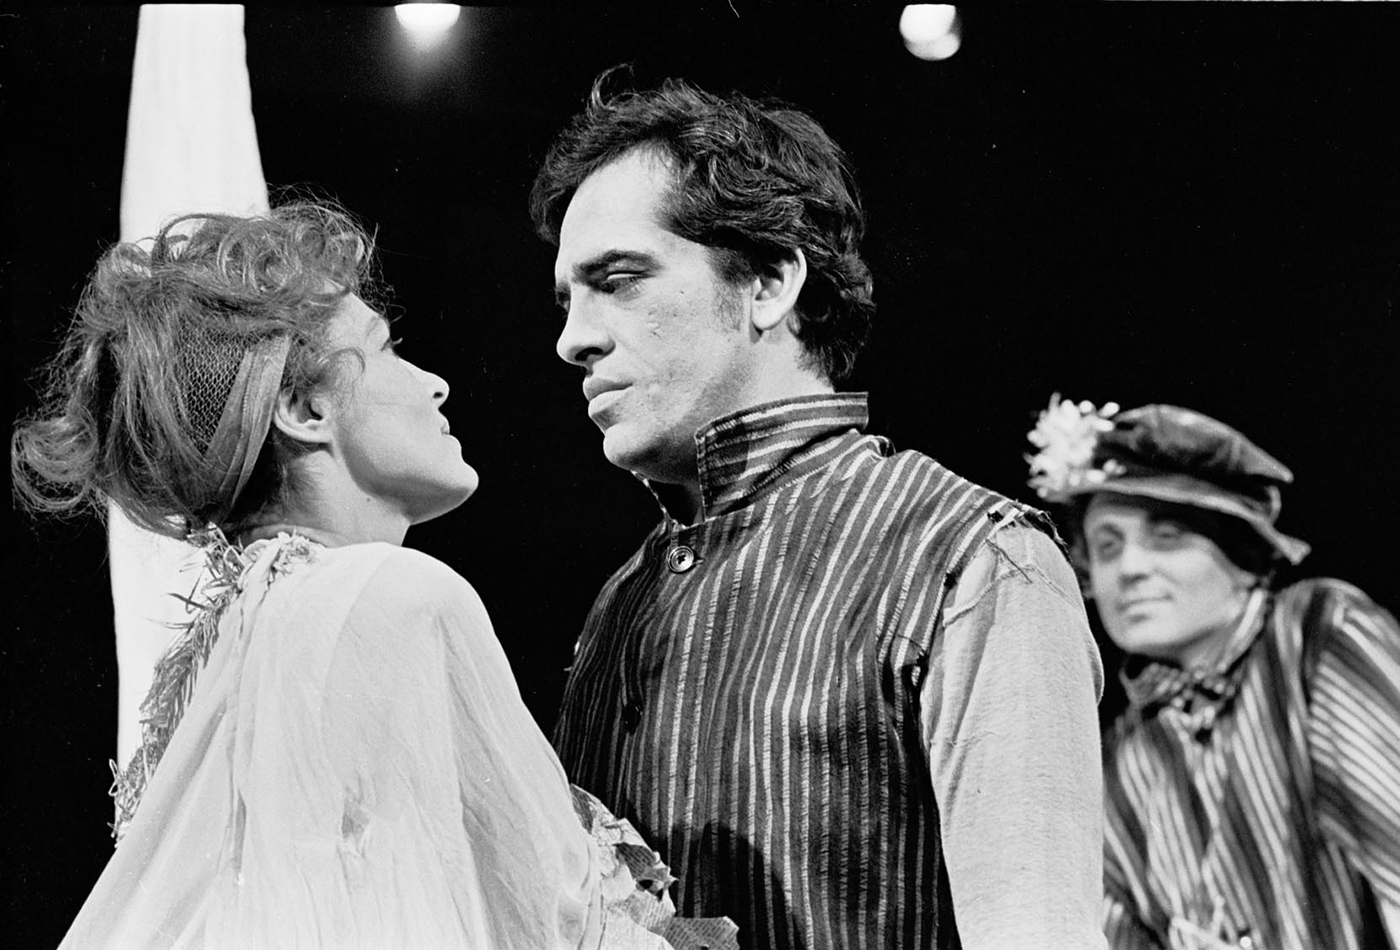 Portia (Viveca Lindfors) and Bassanio (James Patterson) in The Merchant of Venice, with David Tress in background, as directed by George Tabori at the Berkshire Theatre Festival, 1966.